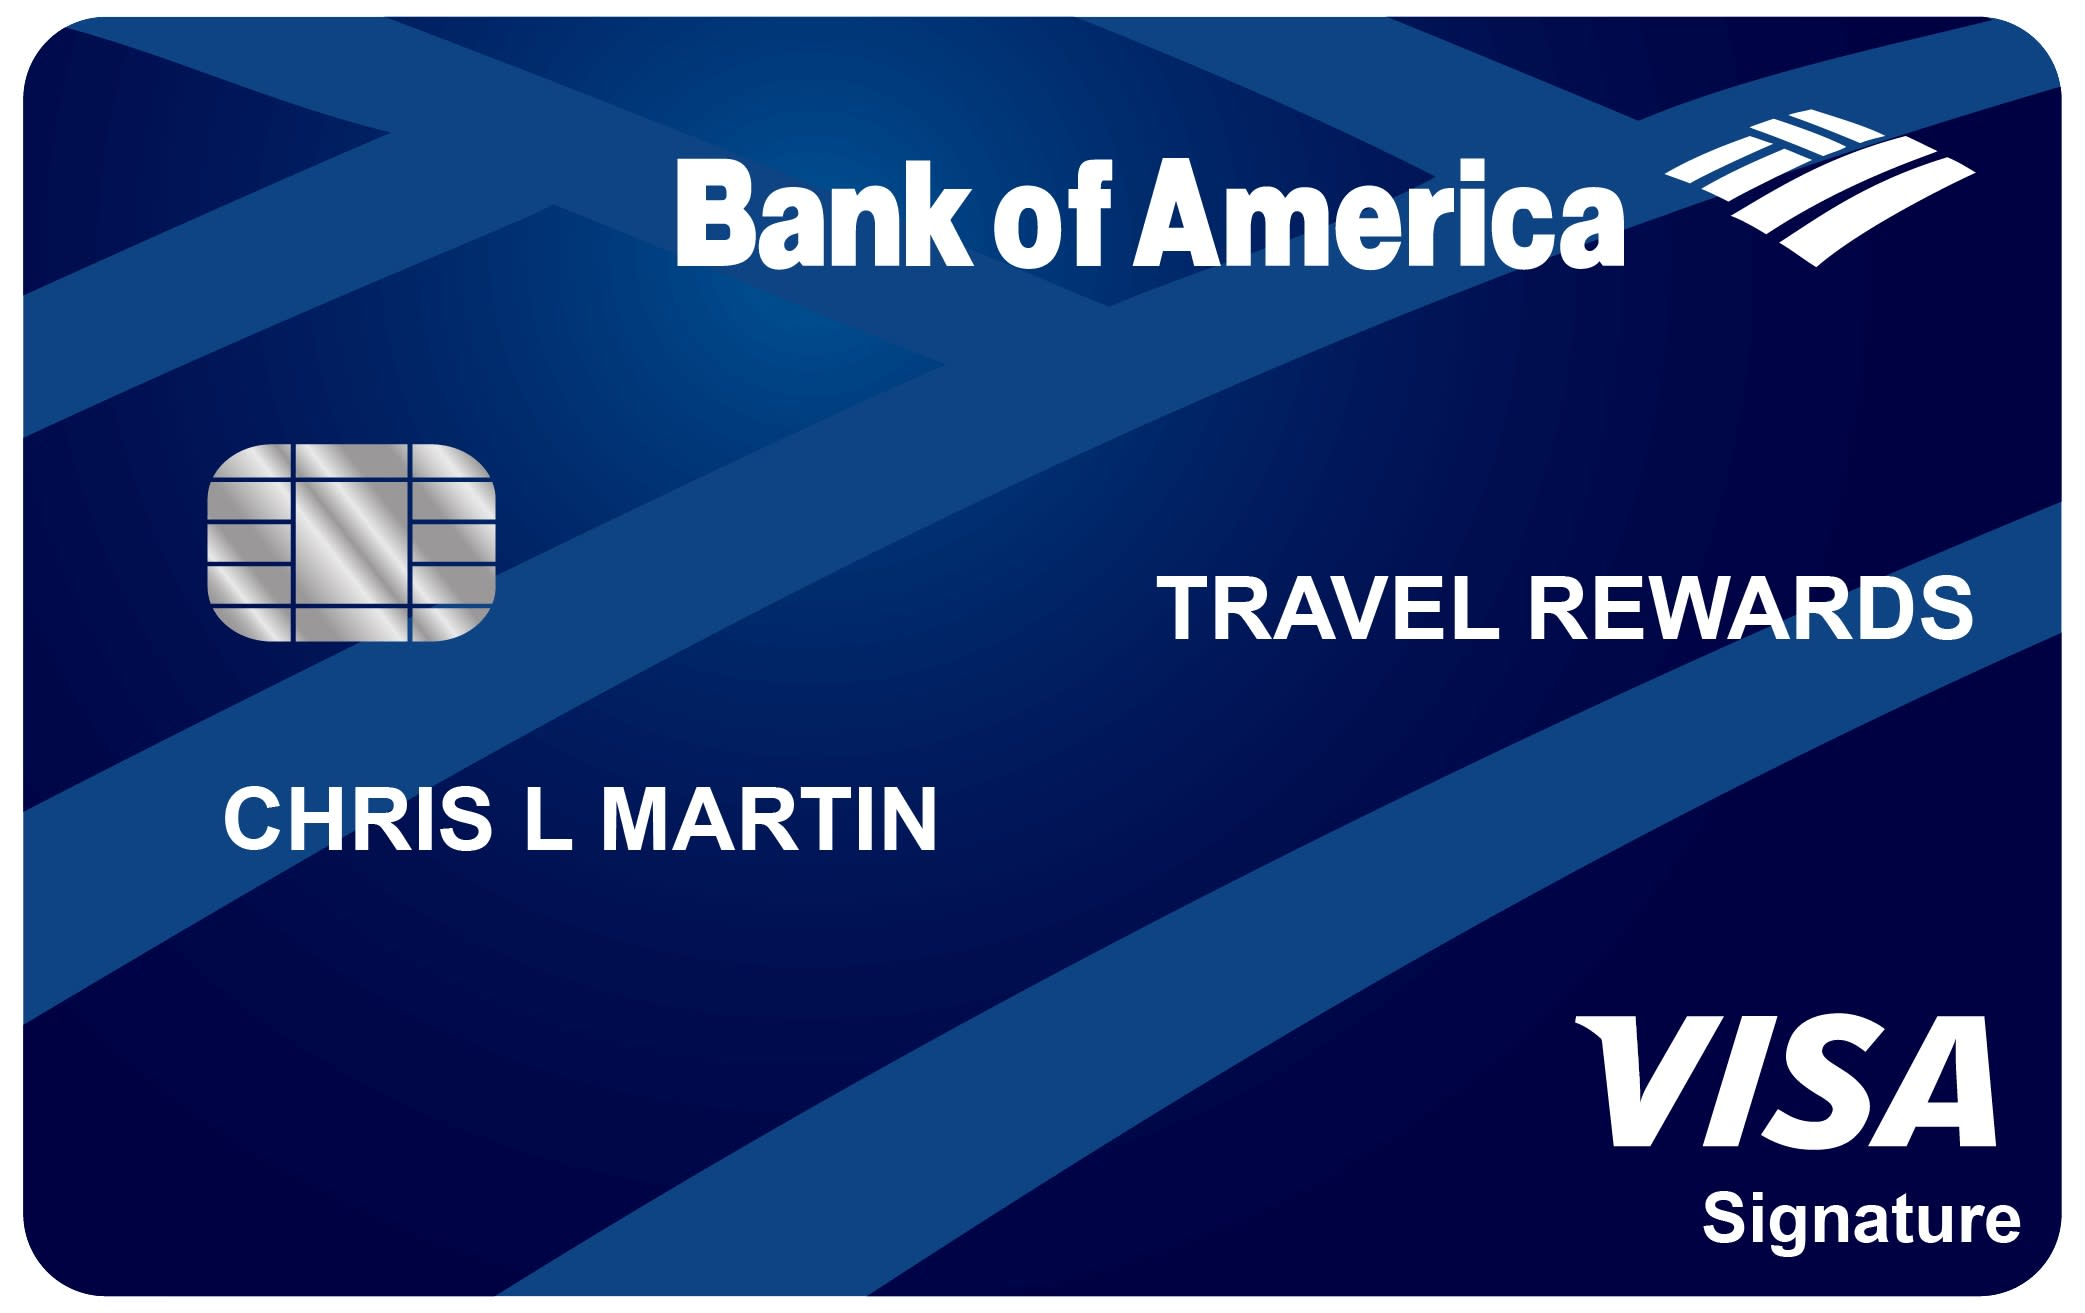 Credit Cards: Bank of America travel rewards